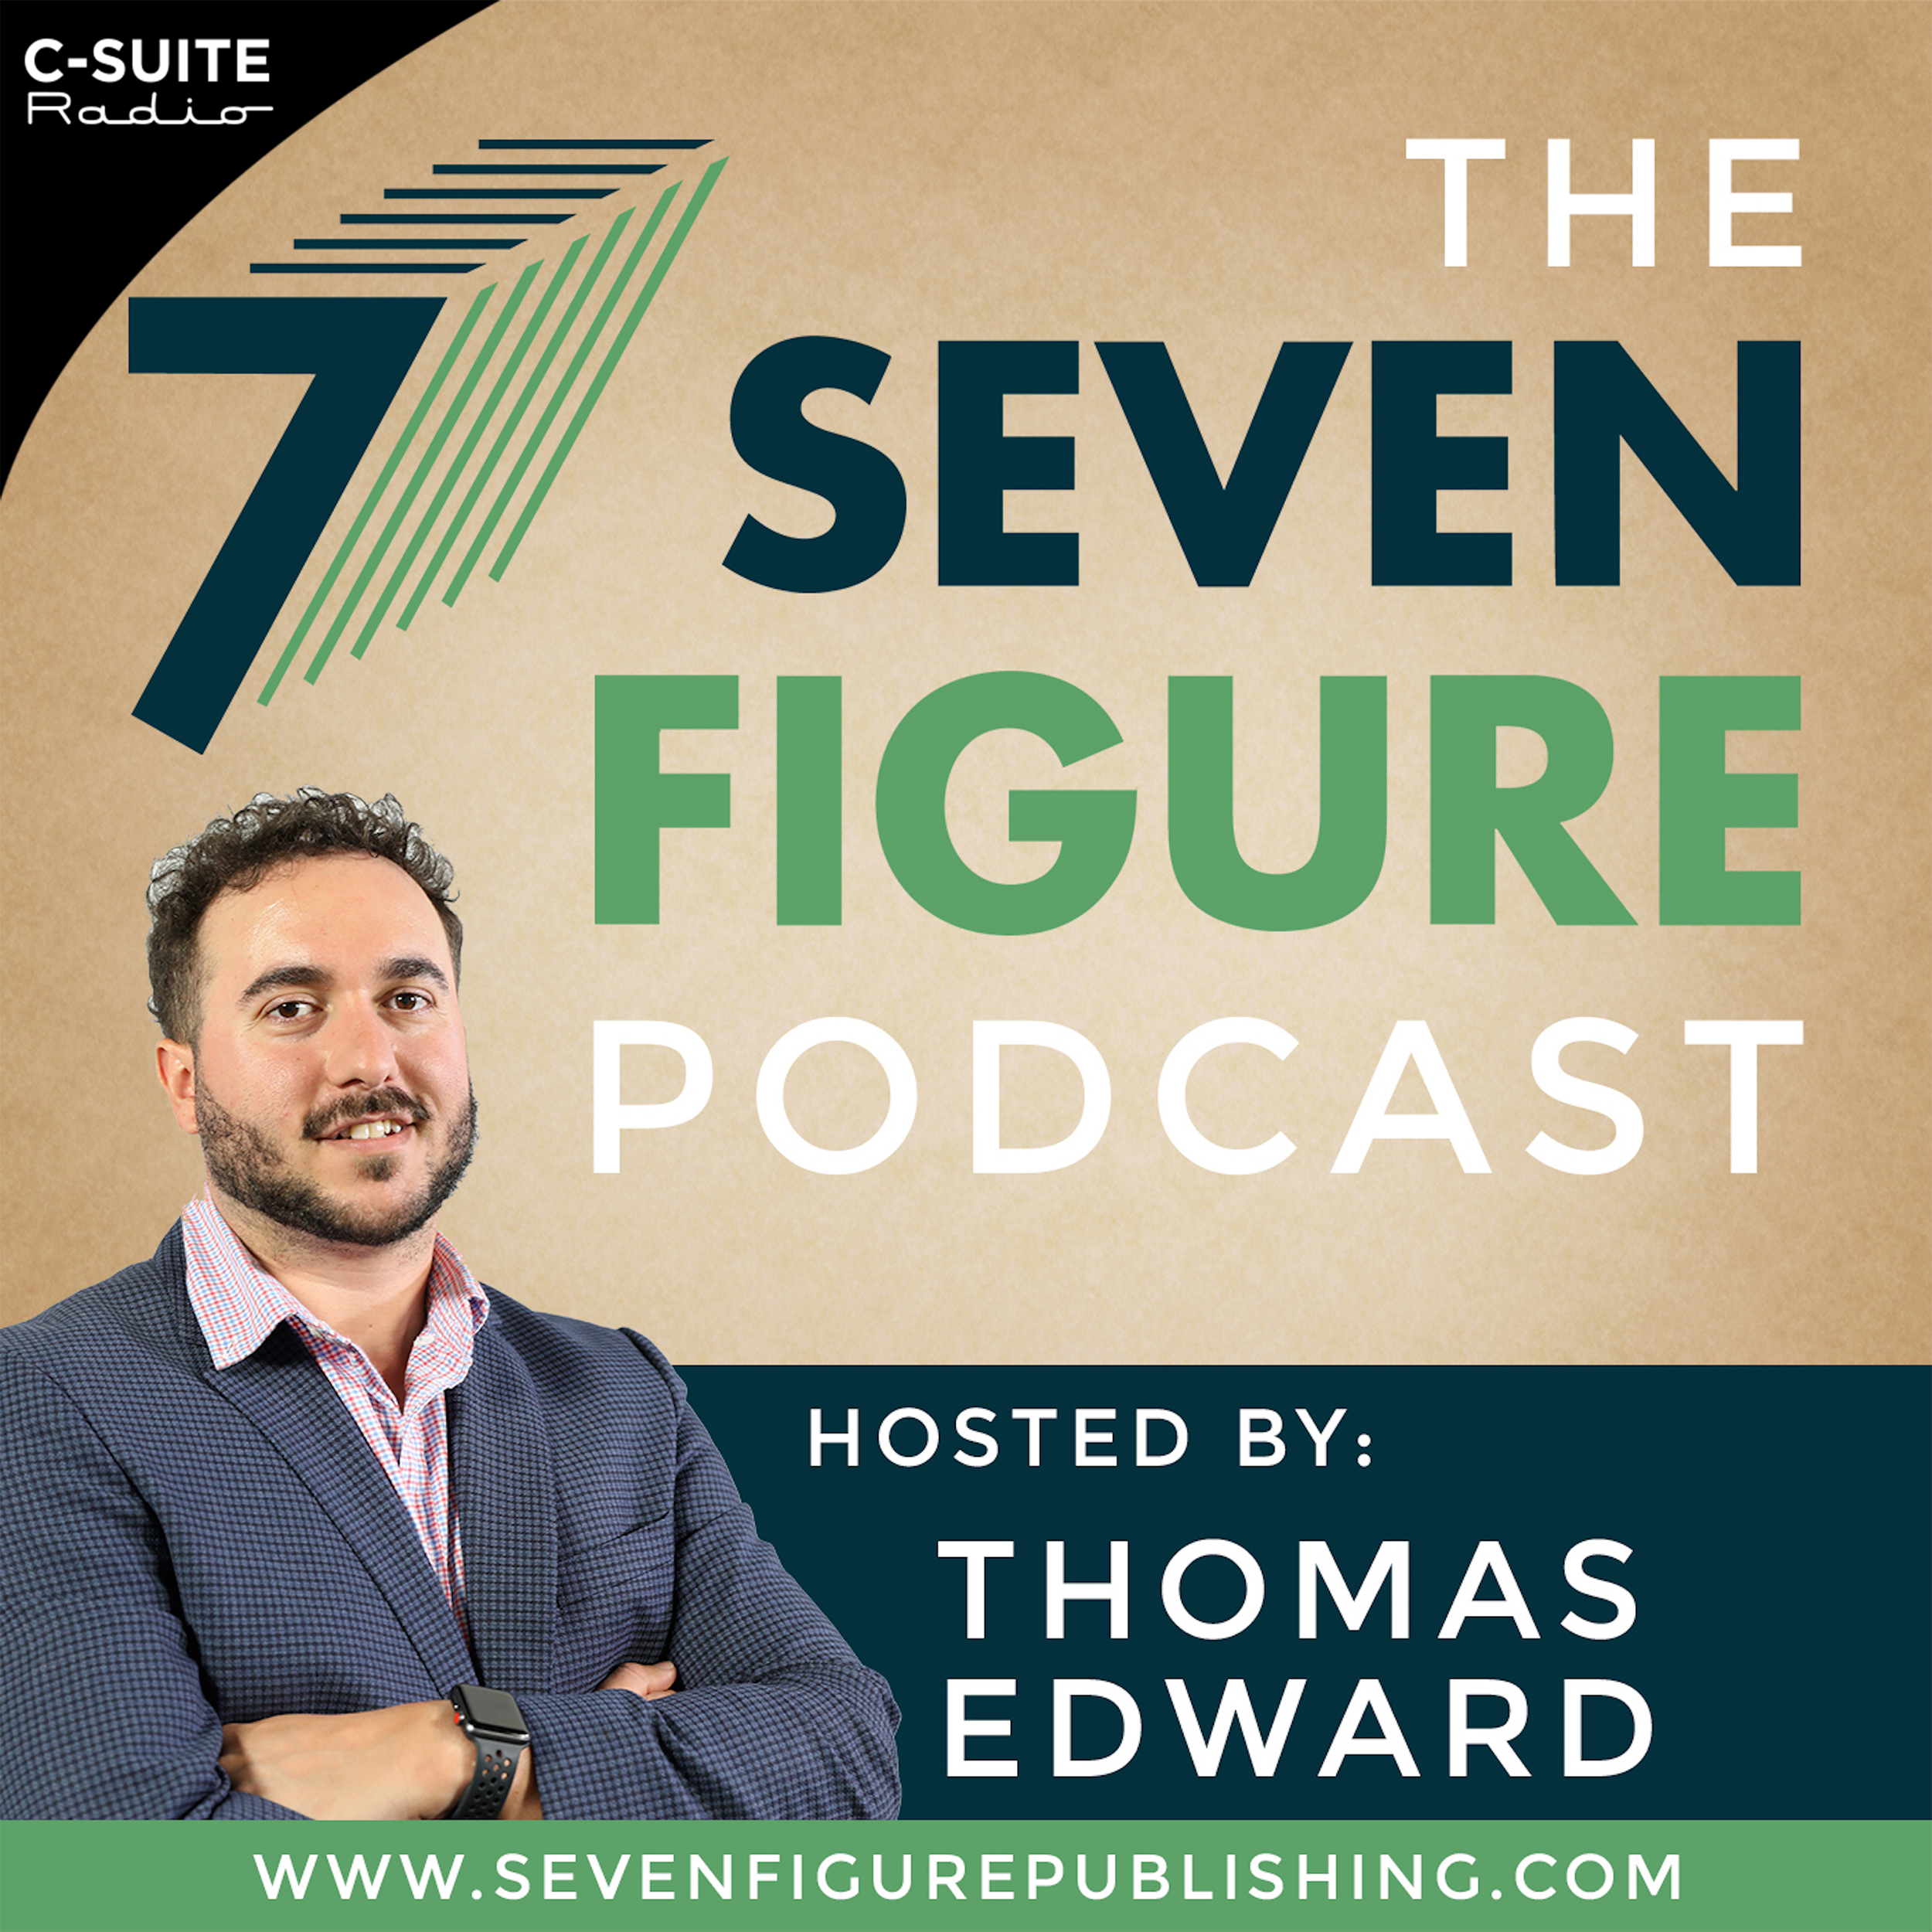 The Seven Figure Podcast